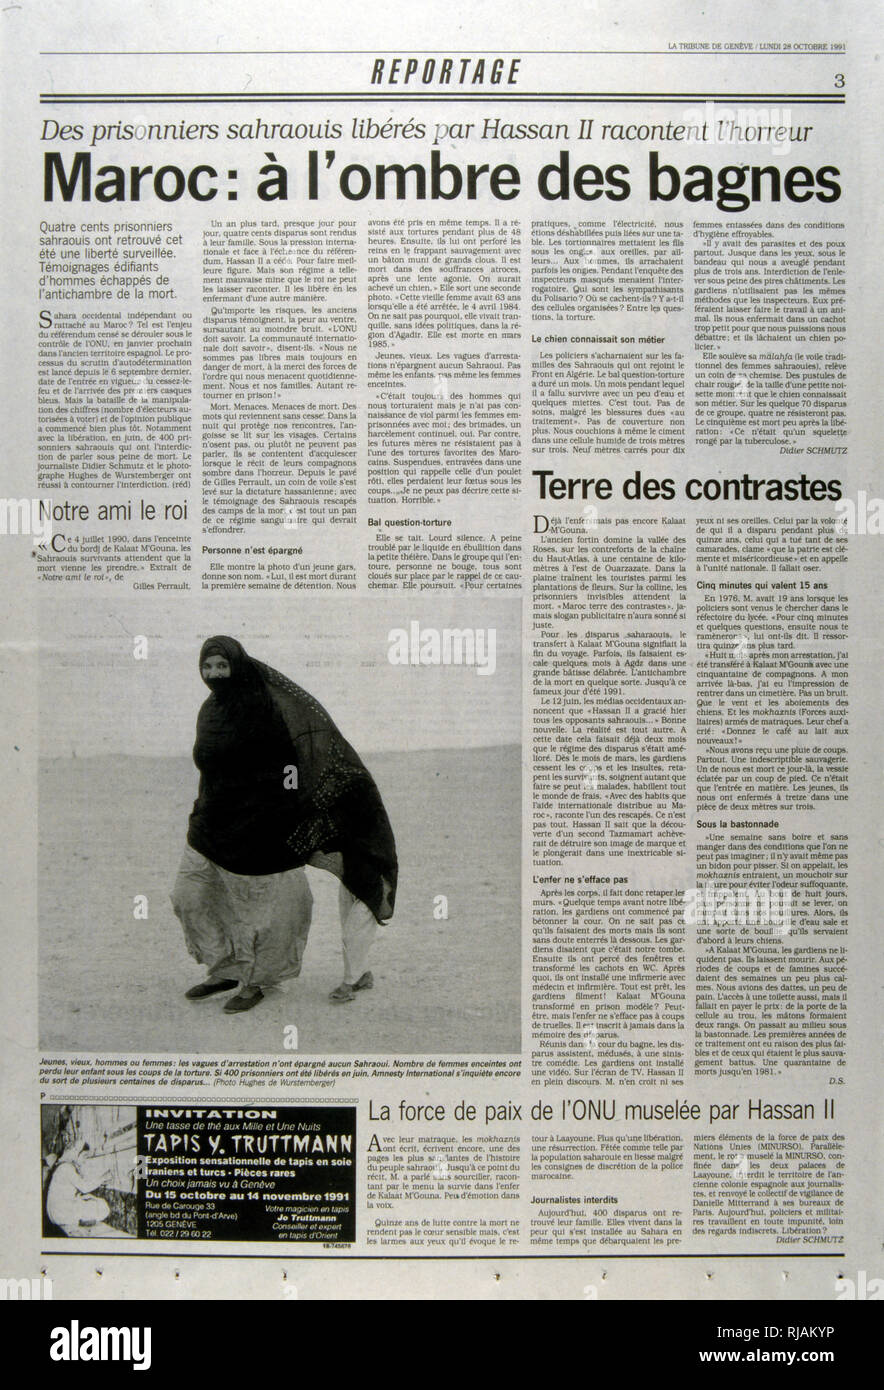 Swiss newspaper 'Reportage' article on torture and detention recounted by hundreds of Moroccan political prisoners freed by King Hassan II. - Stock Image